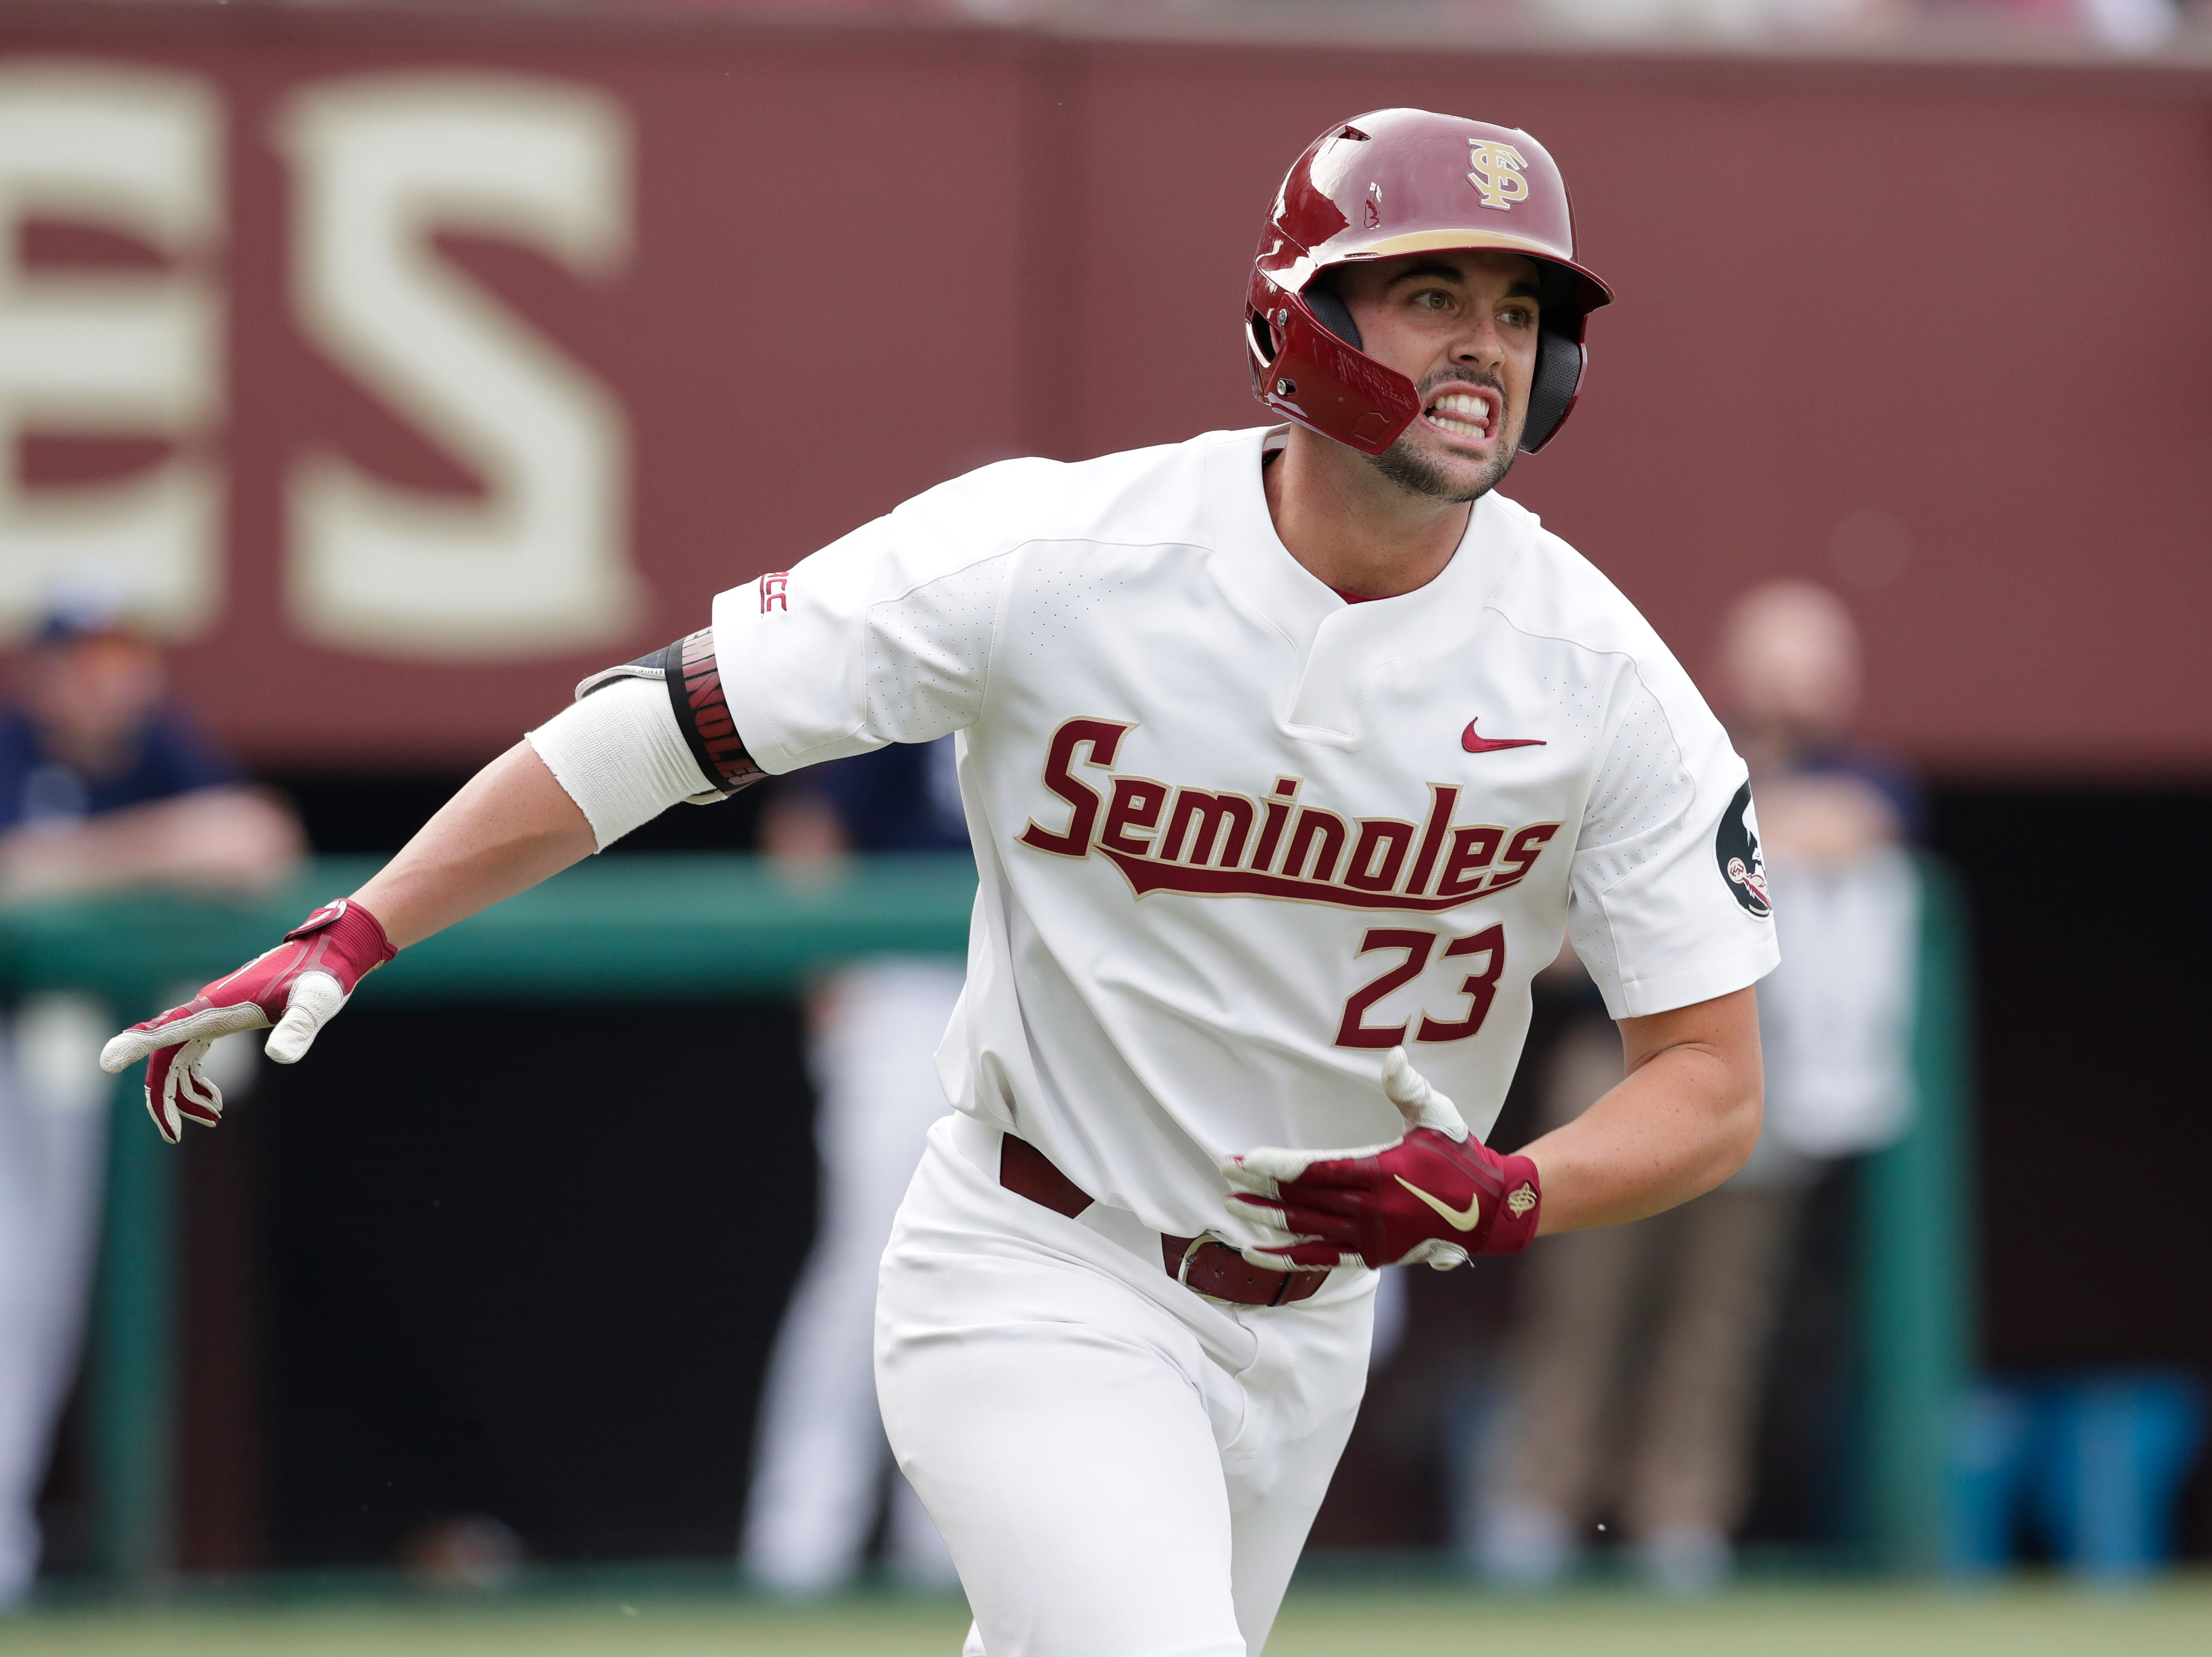 Florida State Seminoles outfielder/left handed pitcher Reese Albert (23) runs to first after hitting the pitch. The Florida State Seminoles host the Maine Black Bears in the 2019 season opener game, Friday Feb. 15, 2019.